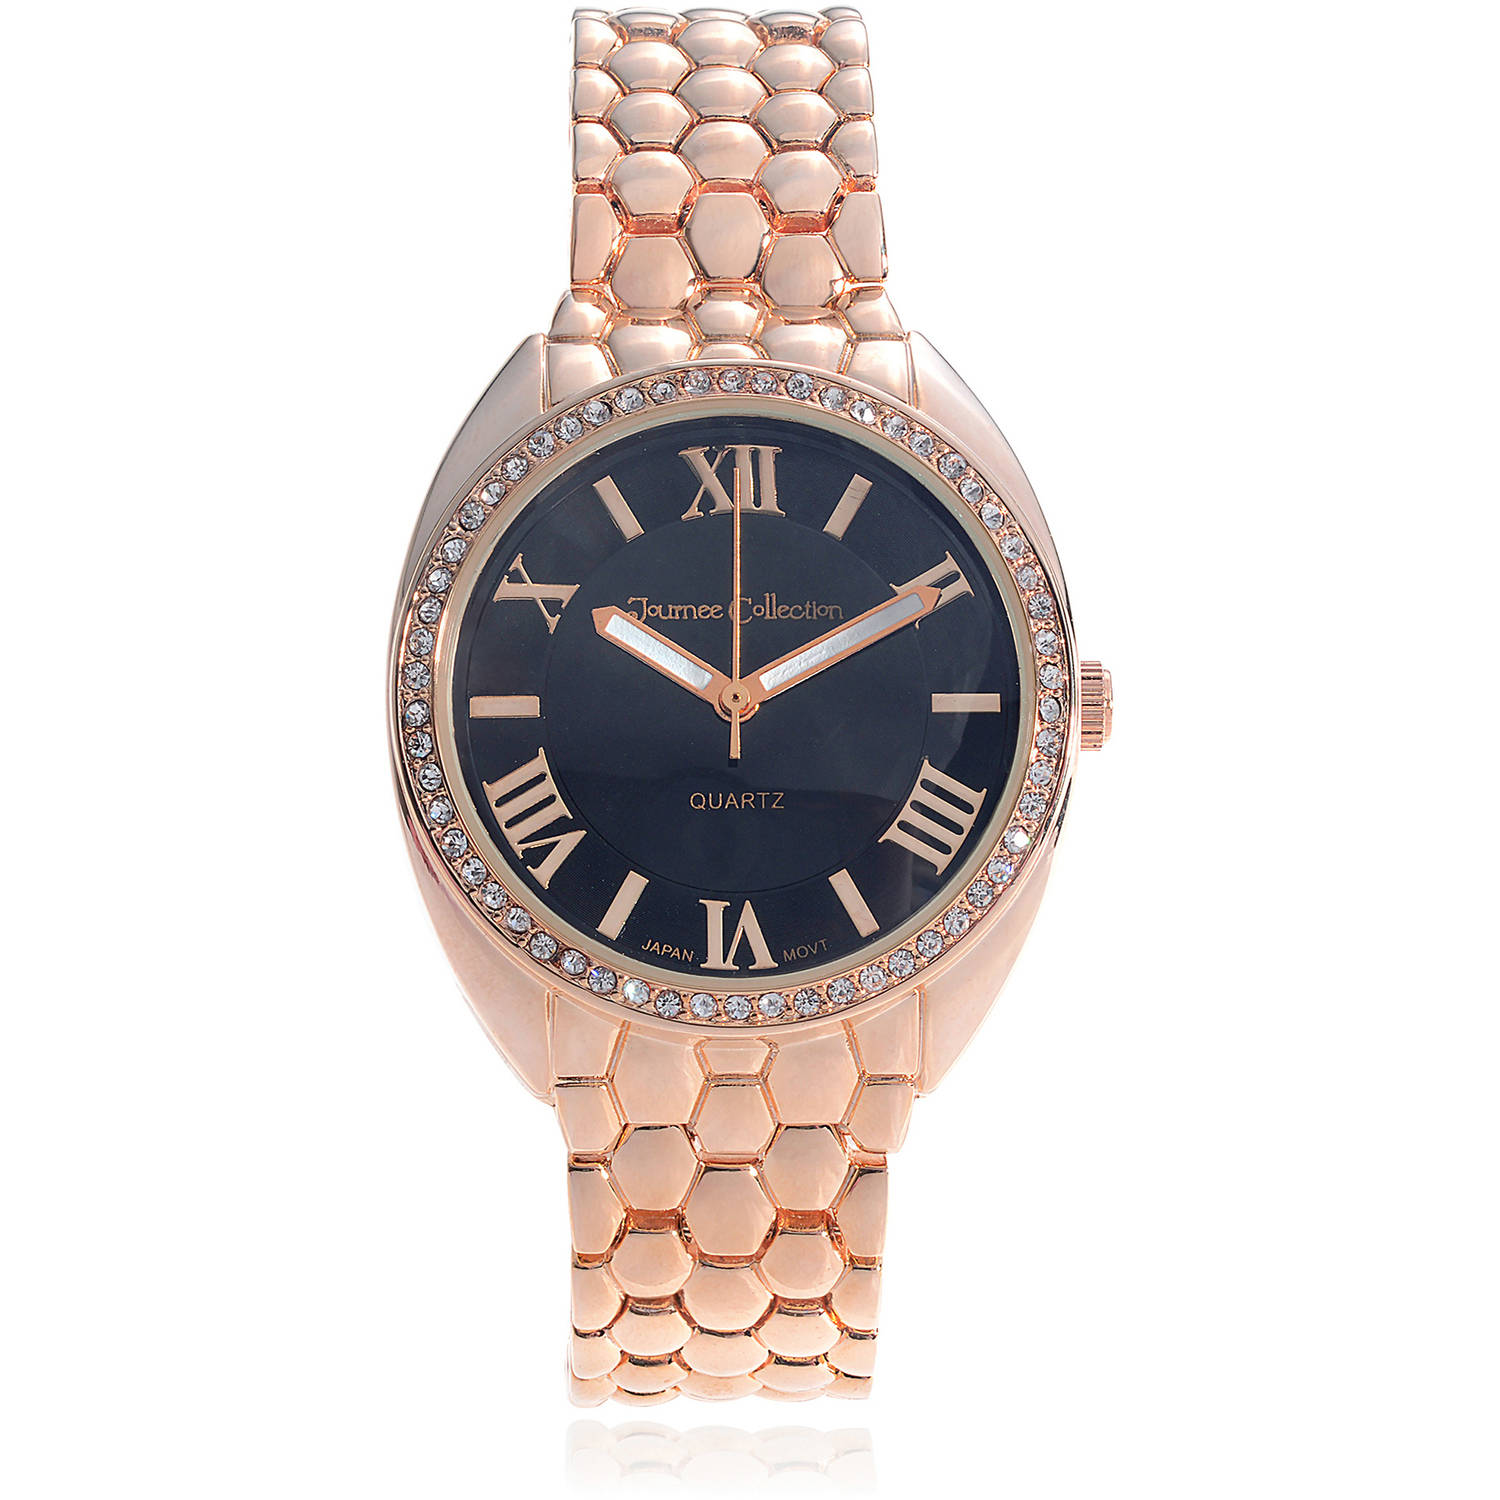 Journee Collection Women's Rhinestone Stainless Steel Link Fashion Watch, Rose Gold